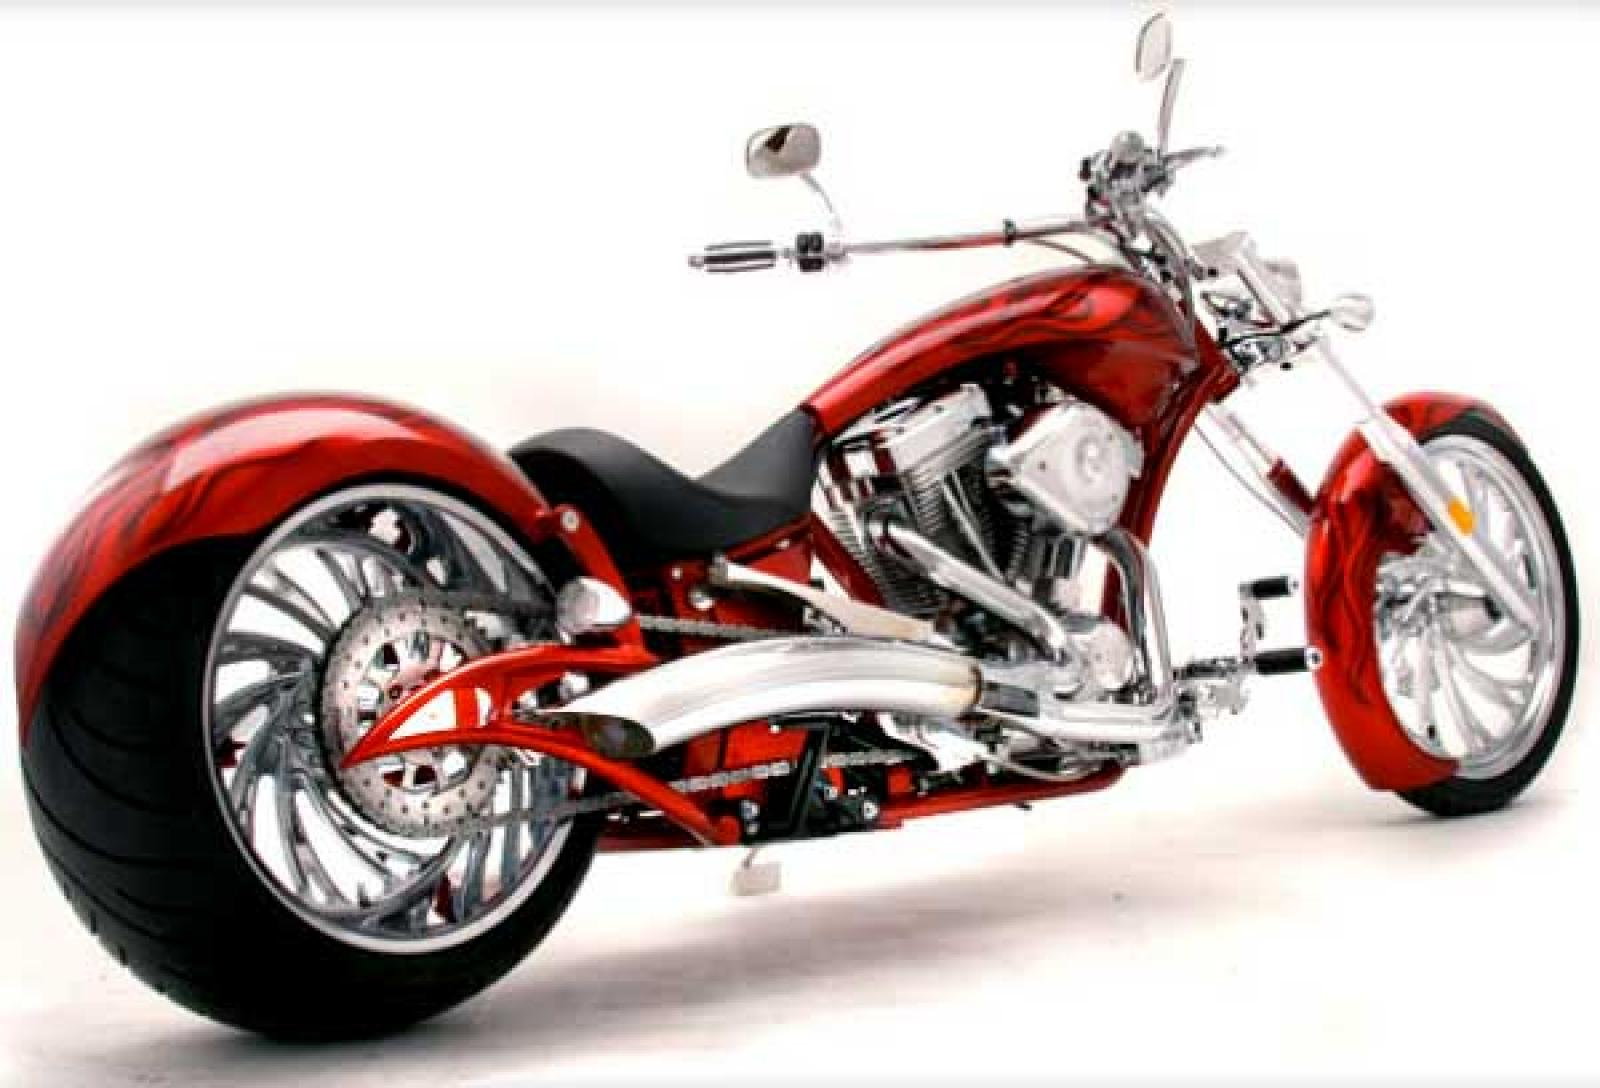 Big Bear Choppers Paradox 114 EFI X-Wedge images #63471